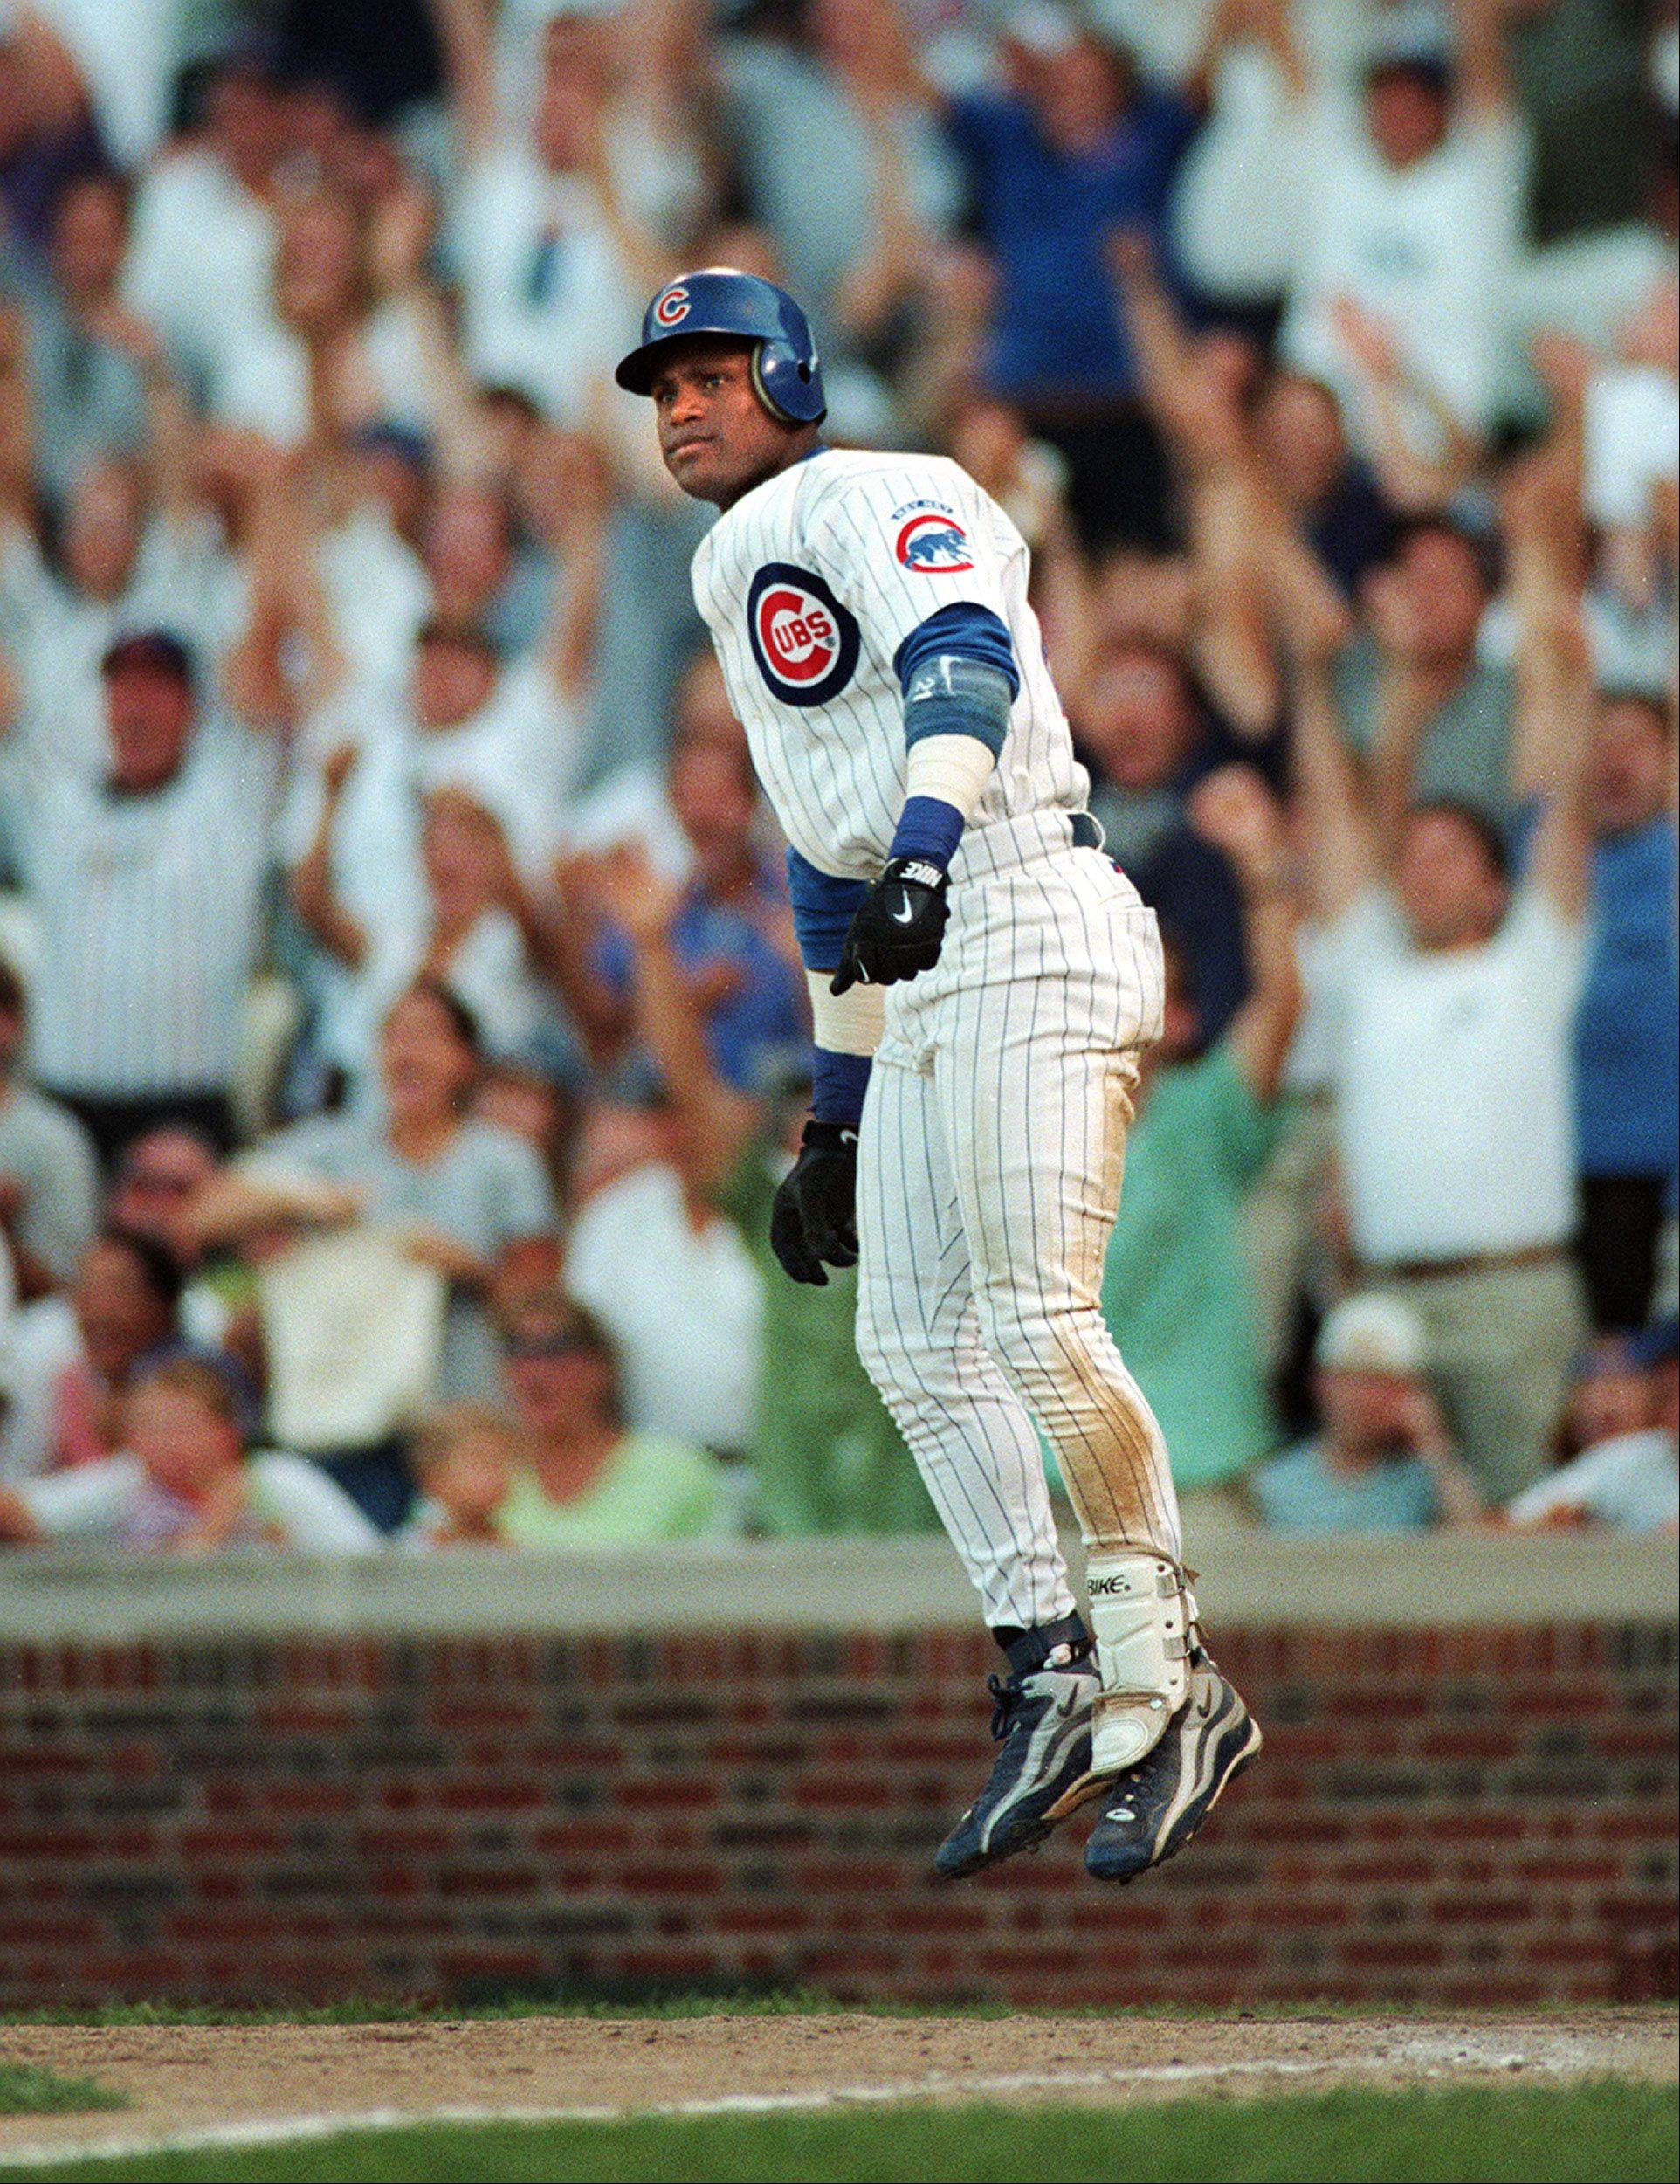 Sammy Sosa does his hop after hitting his 60th home run on Sept. 12, 1998, tying Babe Ruth�s record at the time for home runs in a season. The next day Sosa hit 2 more at Wrigley Field.